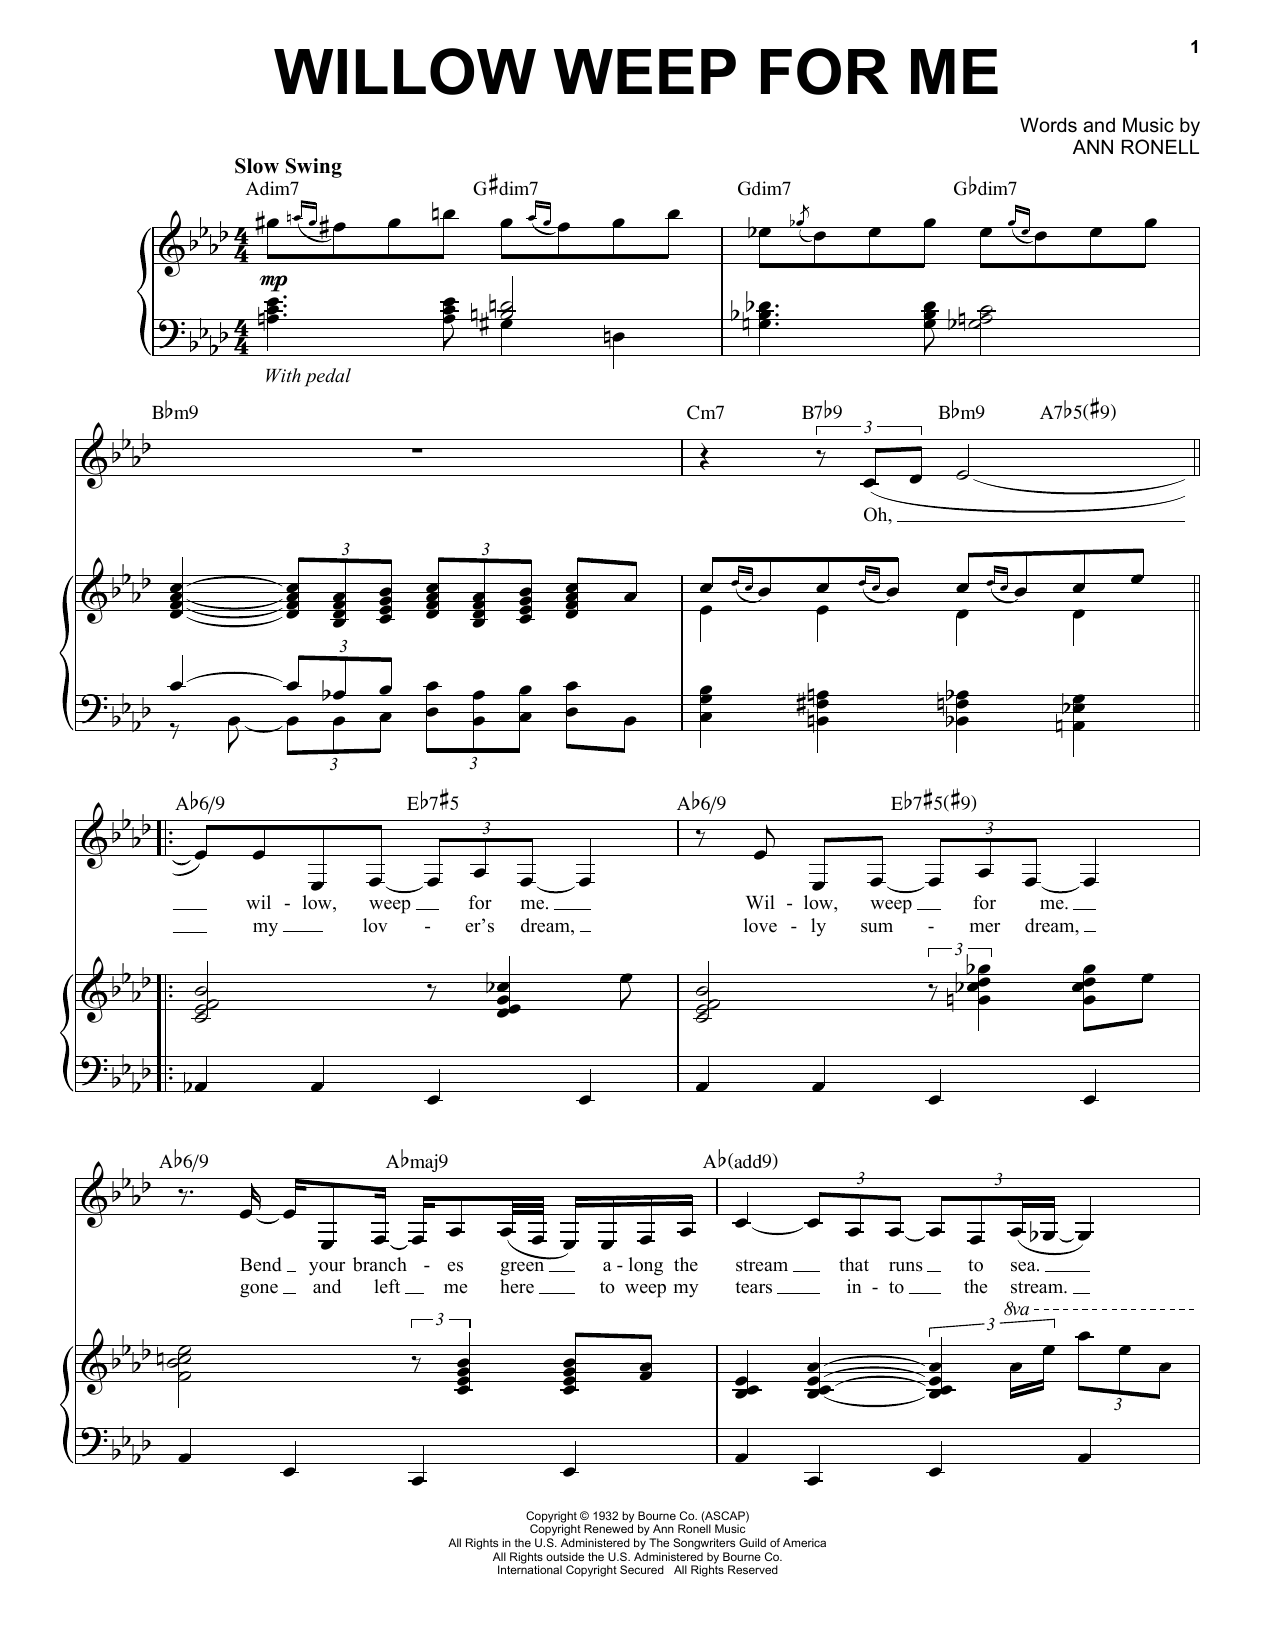 Nina Simone Willow Weep For Me sheet music notes and chords. Download Printable PDF.